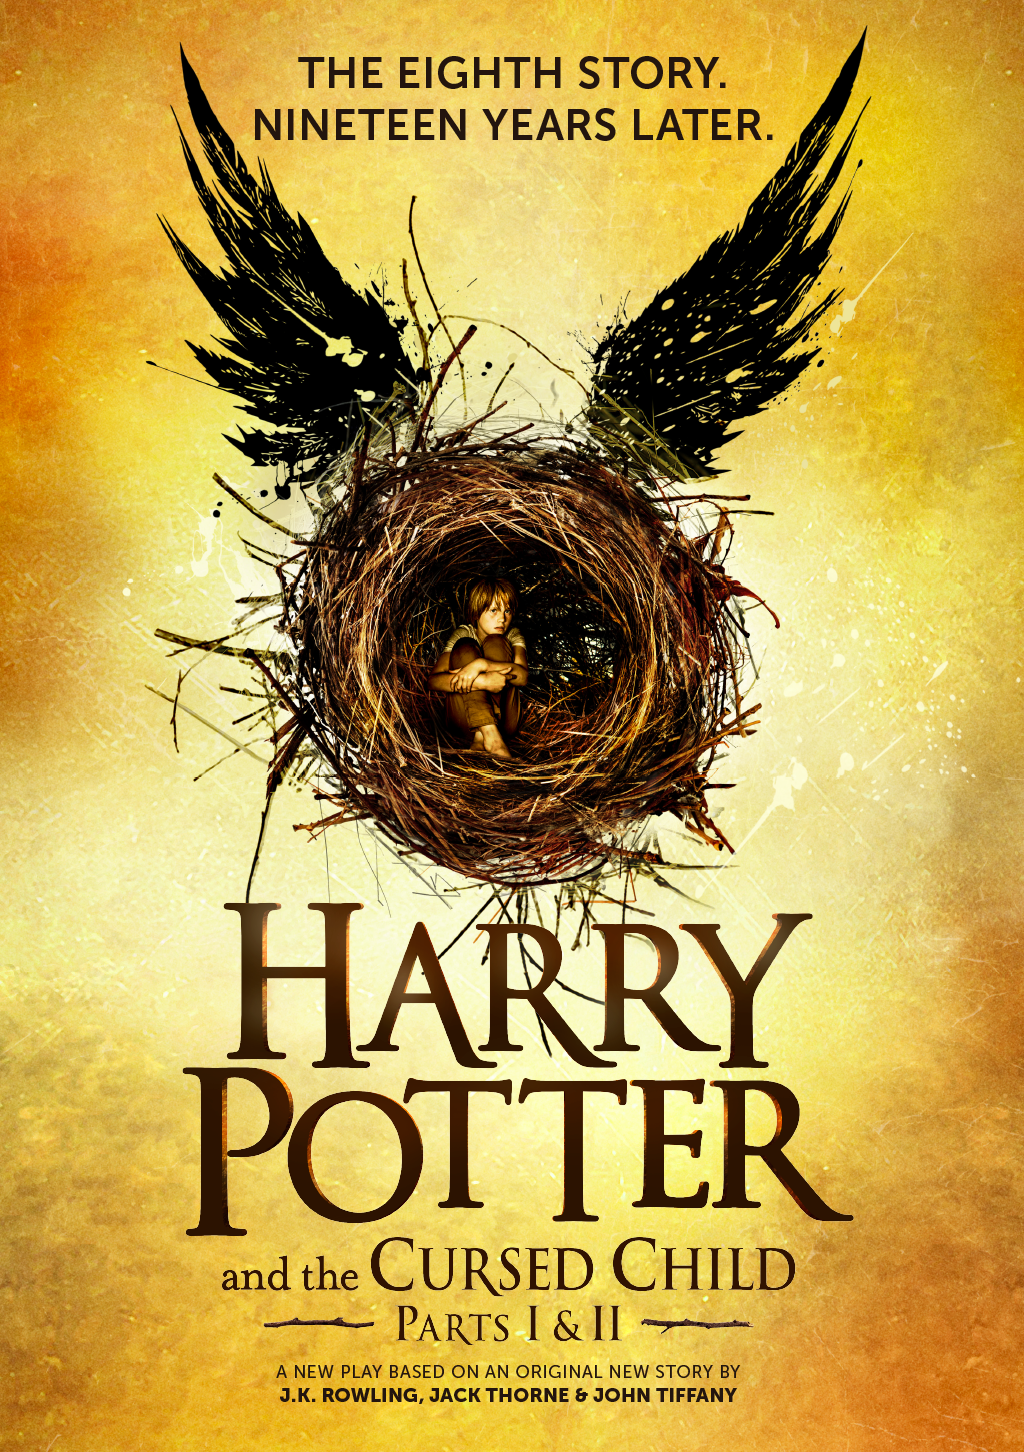 https://www.goodreads.com/book/show/29056083-harry-potter-and-the-cursed-child